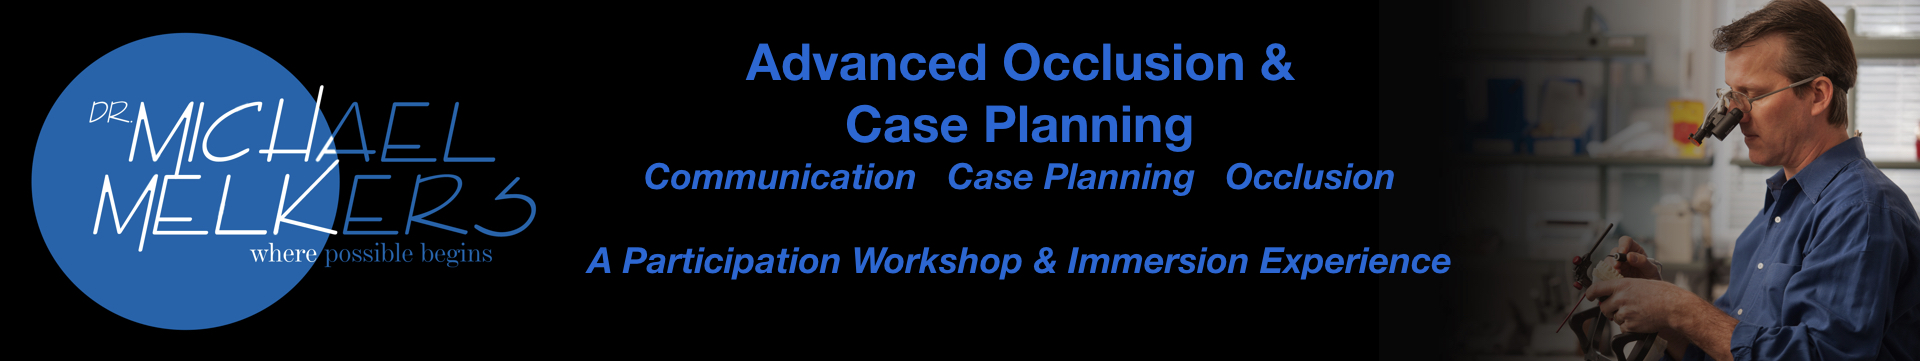 Advanced Occlusion & Case Planning Workshop April 2020